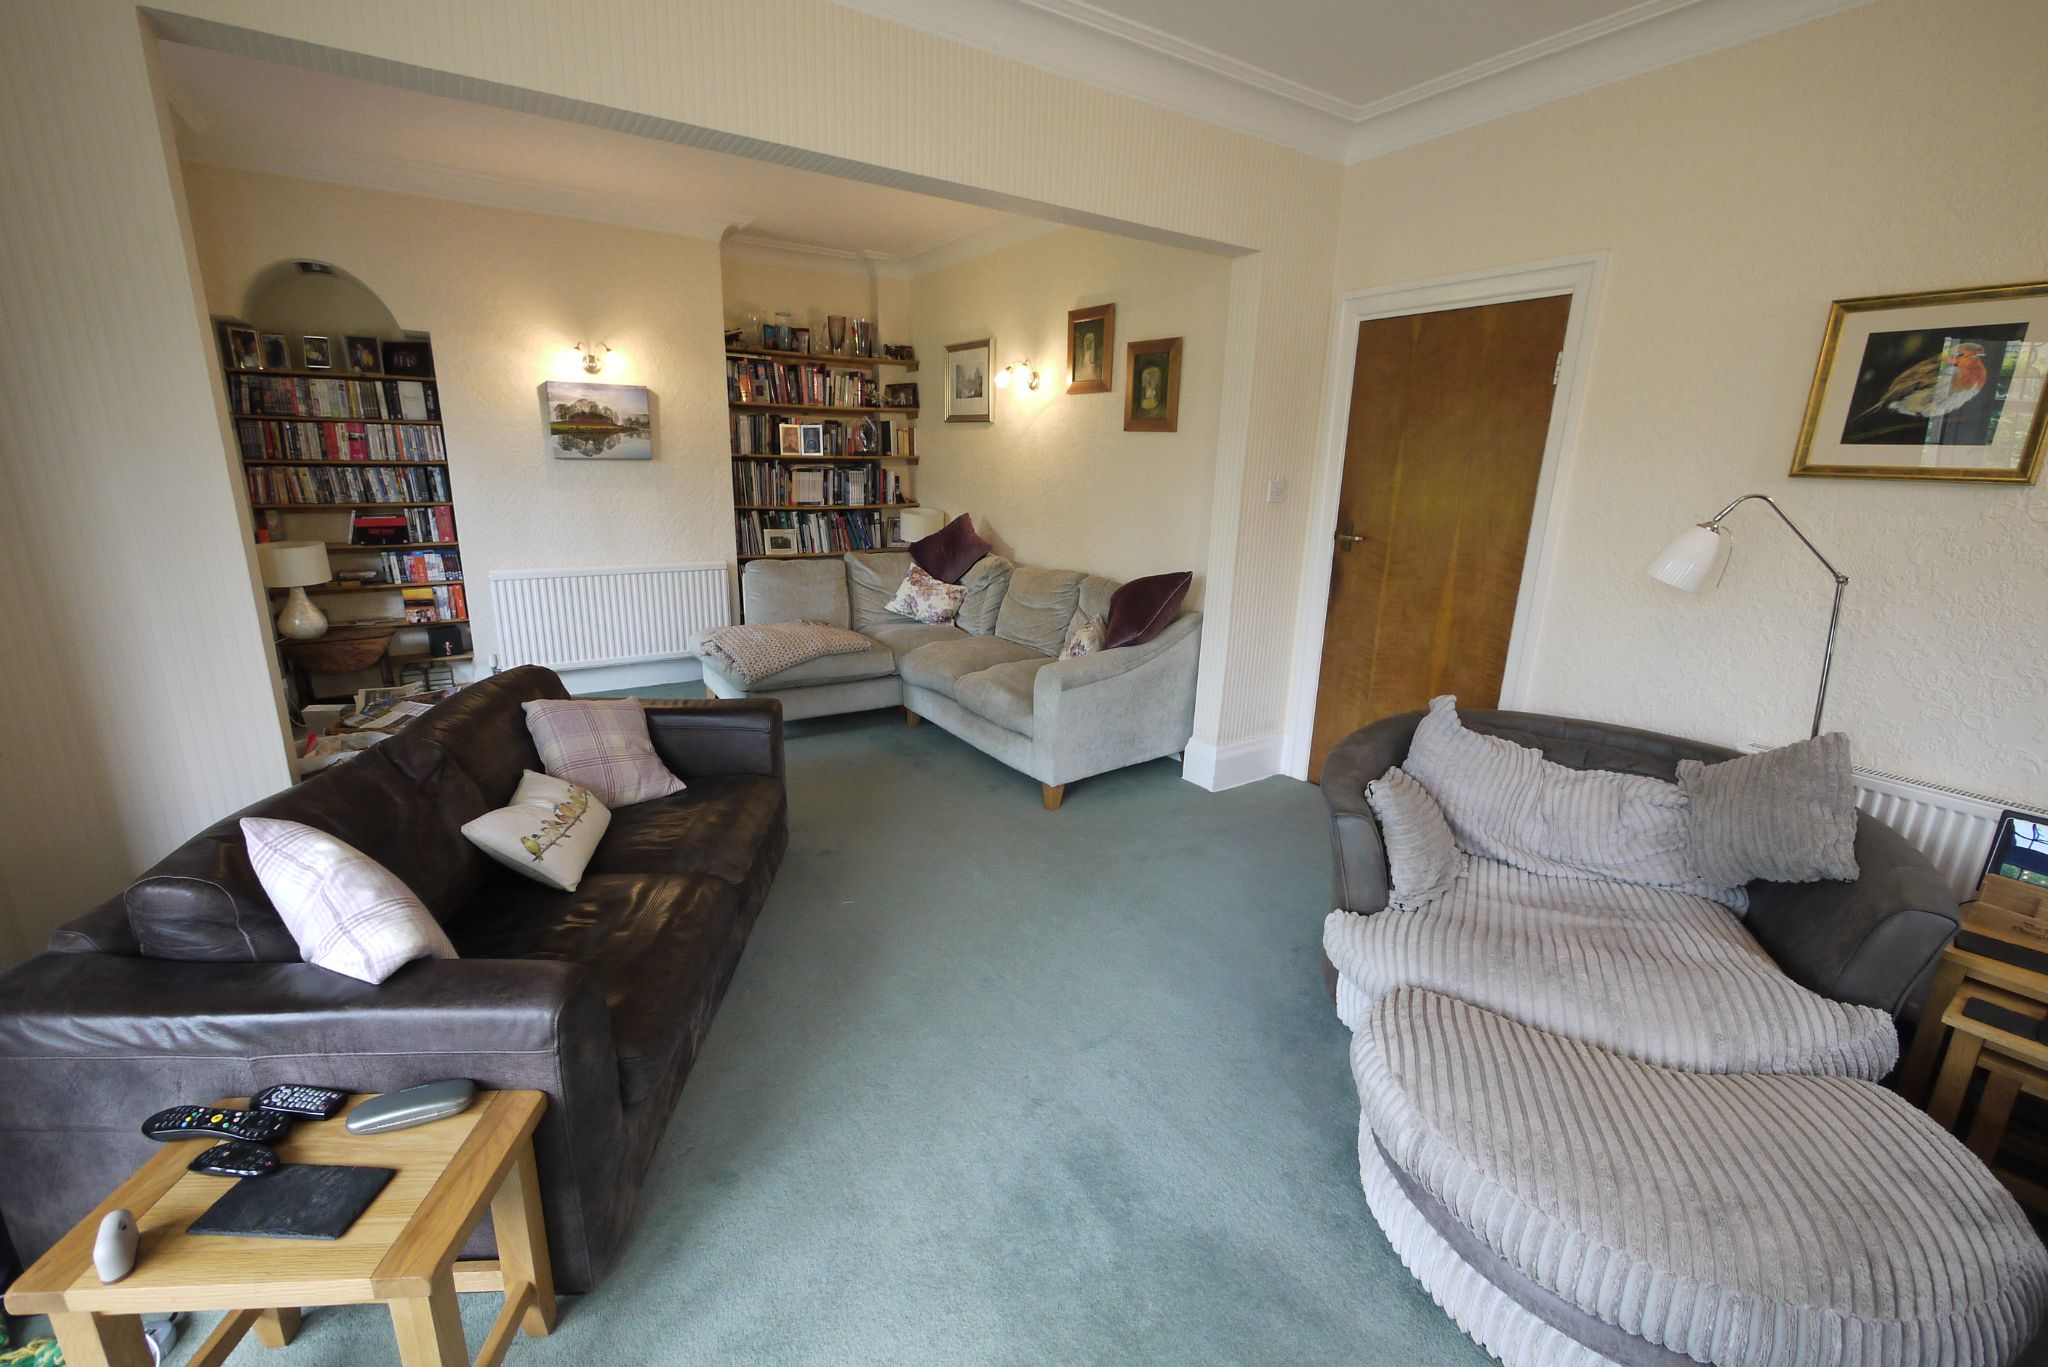 4 bedroom detached house SSTC in Brighouse - Photograph 12.